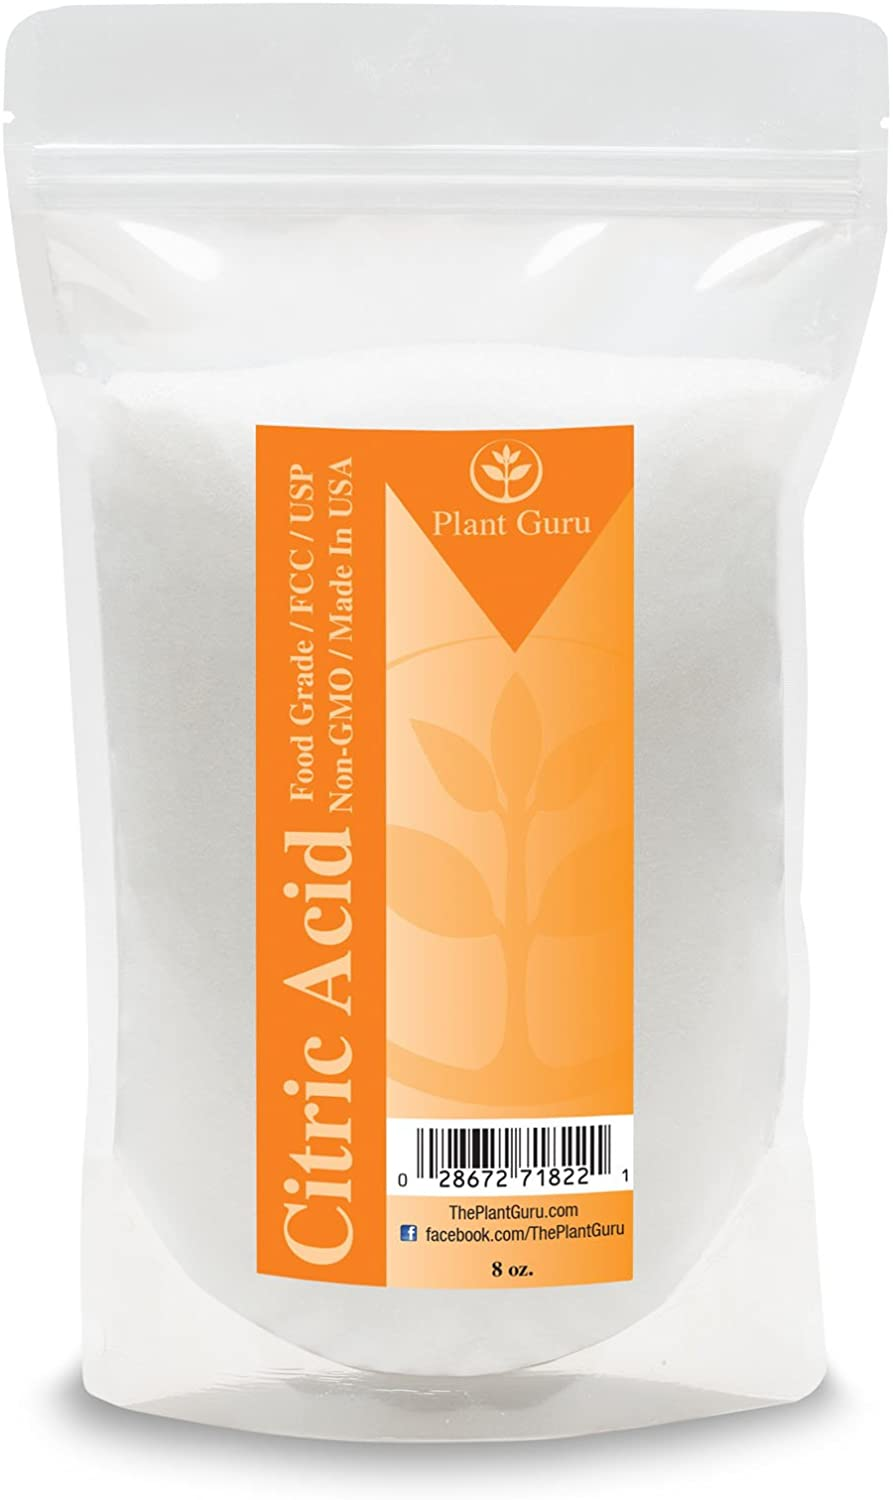 Citric Acid 8 oz. 100% Pure Food Grade, Kosher, Non-GMO, for Cooking, Baking, Cleaning, Bath Bomb and Soap Making.